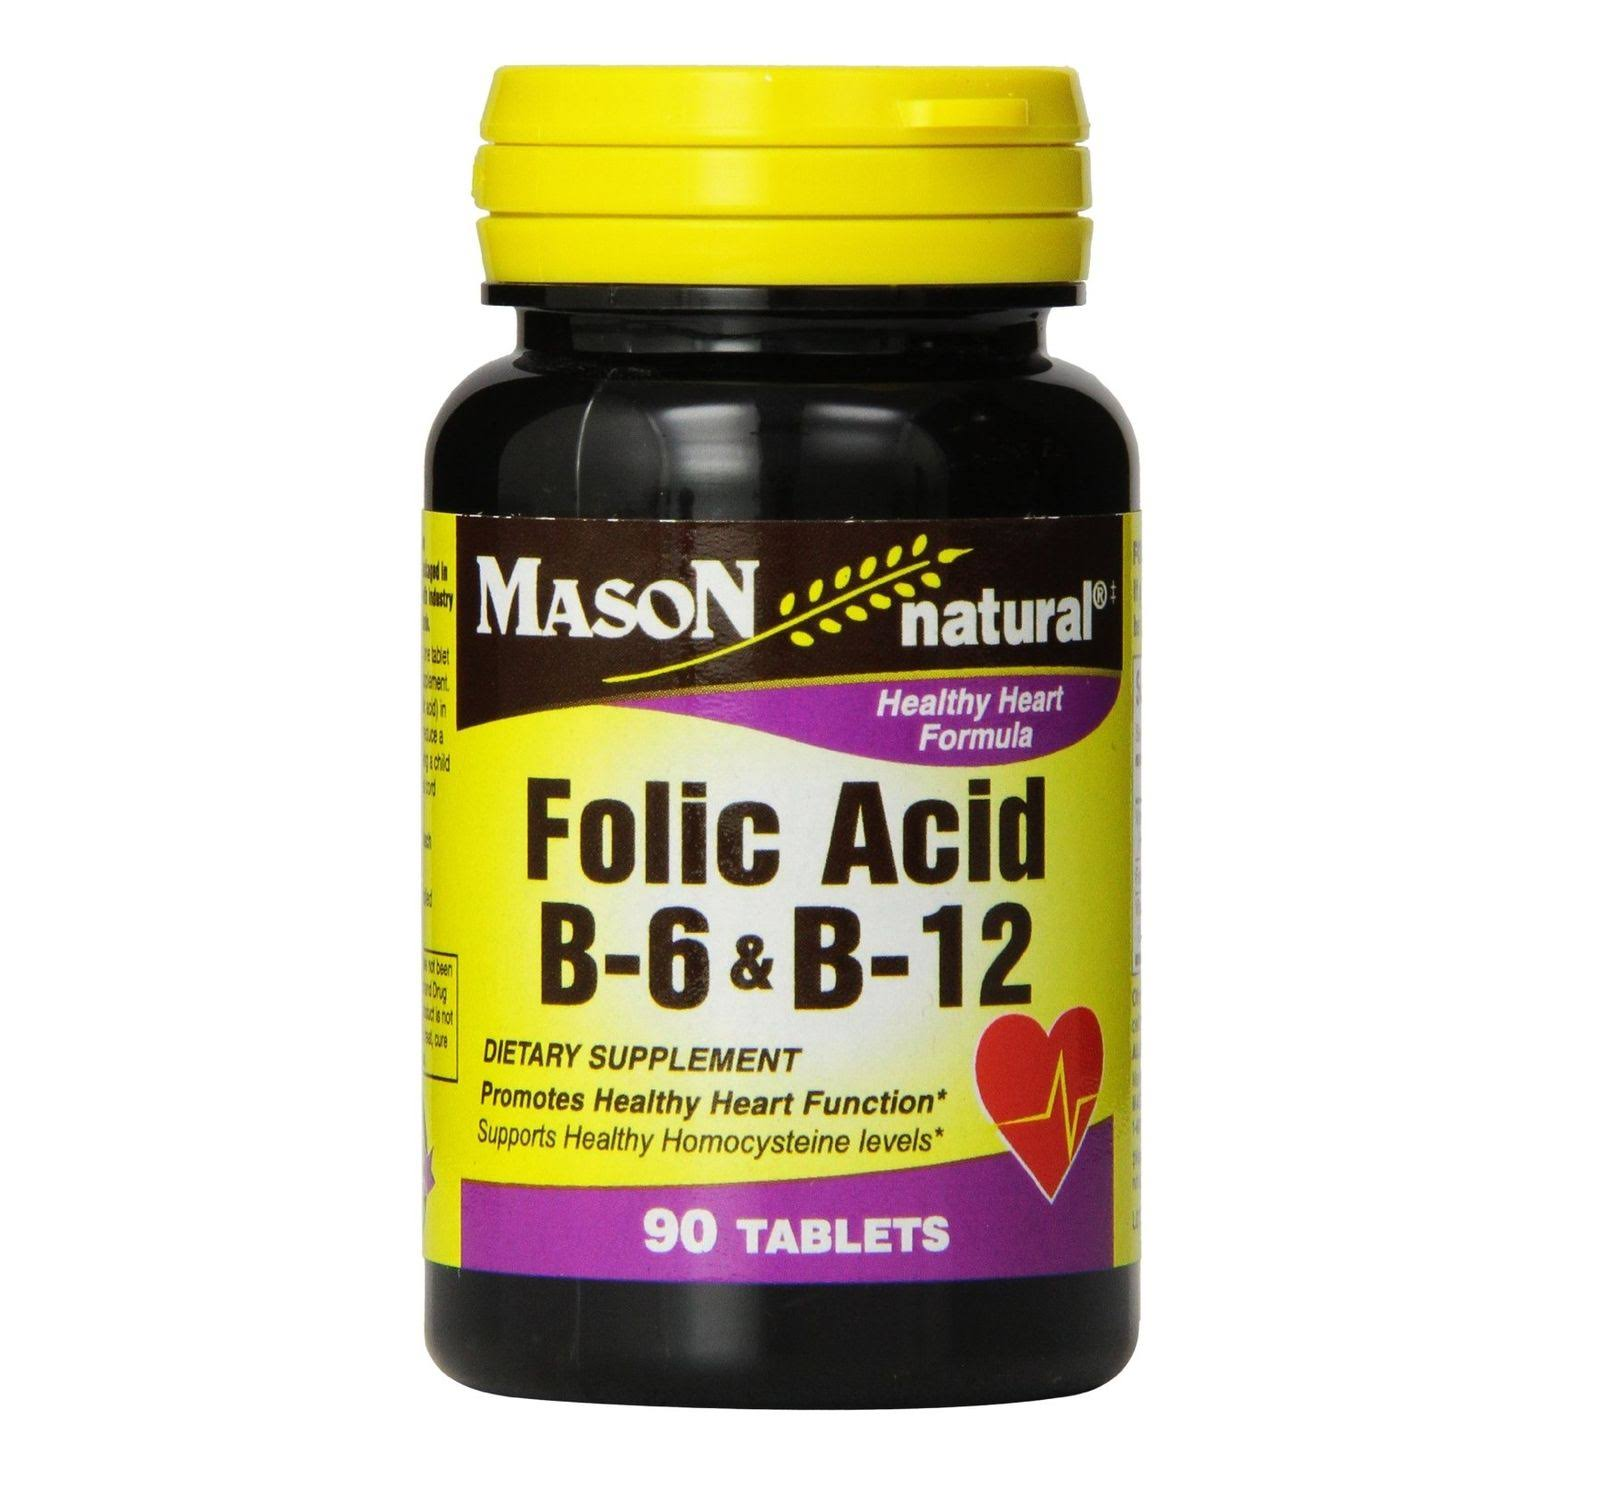 Mason Vitamins Natural Folic Acid Dietary Supplement - 100 Tablets